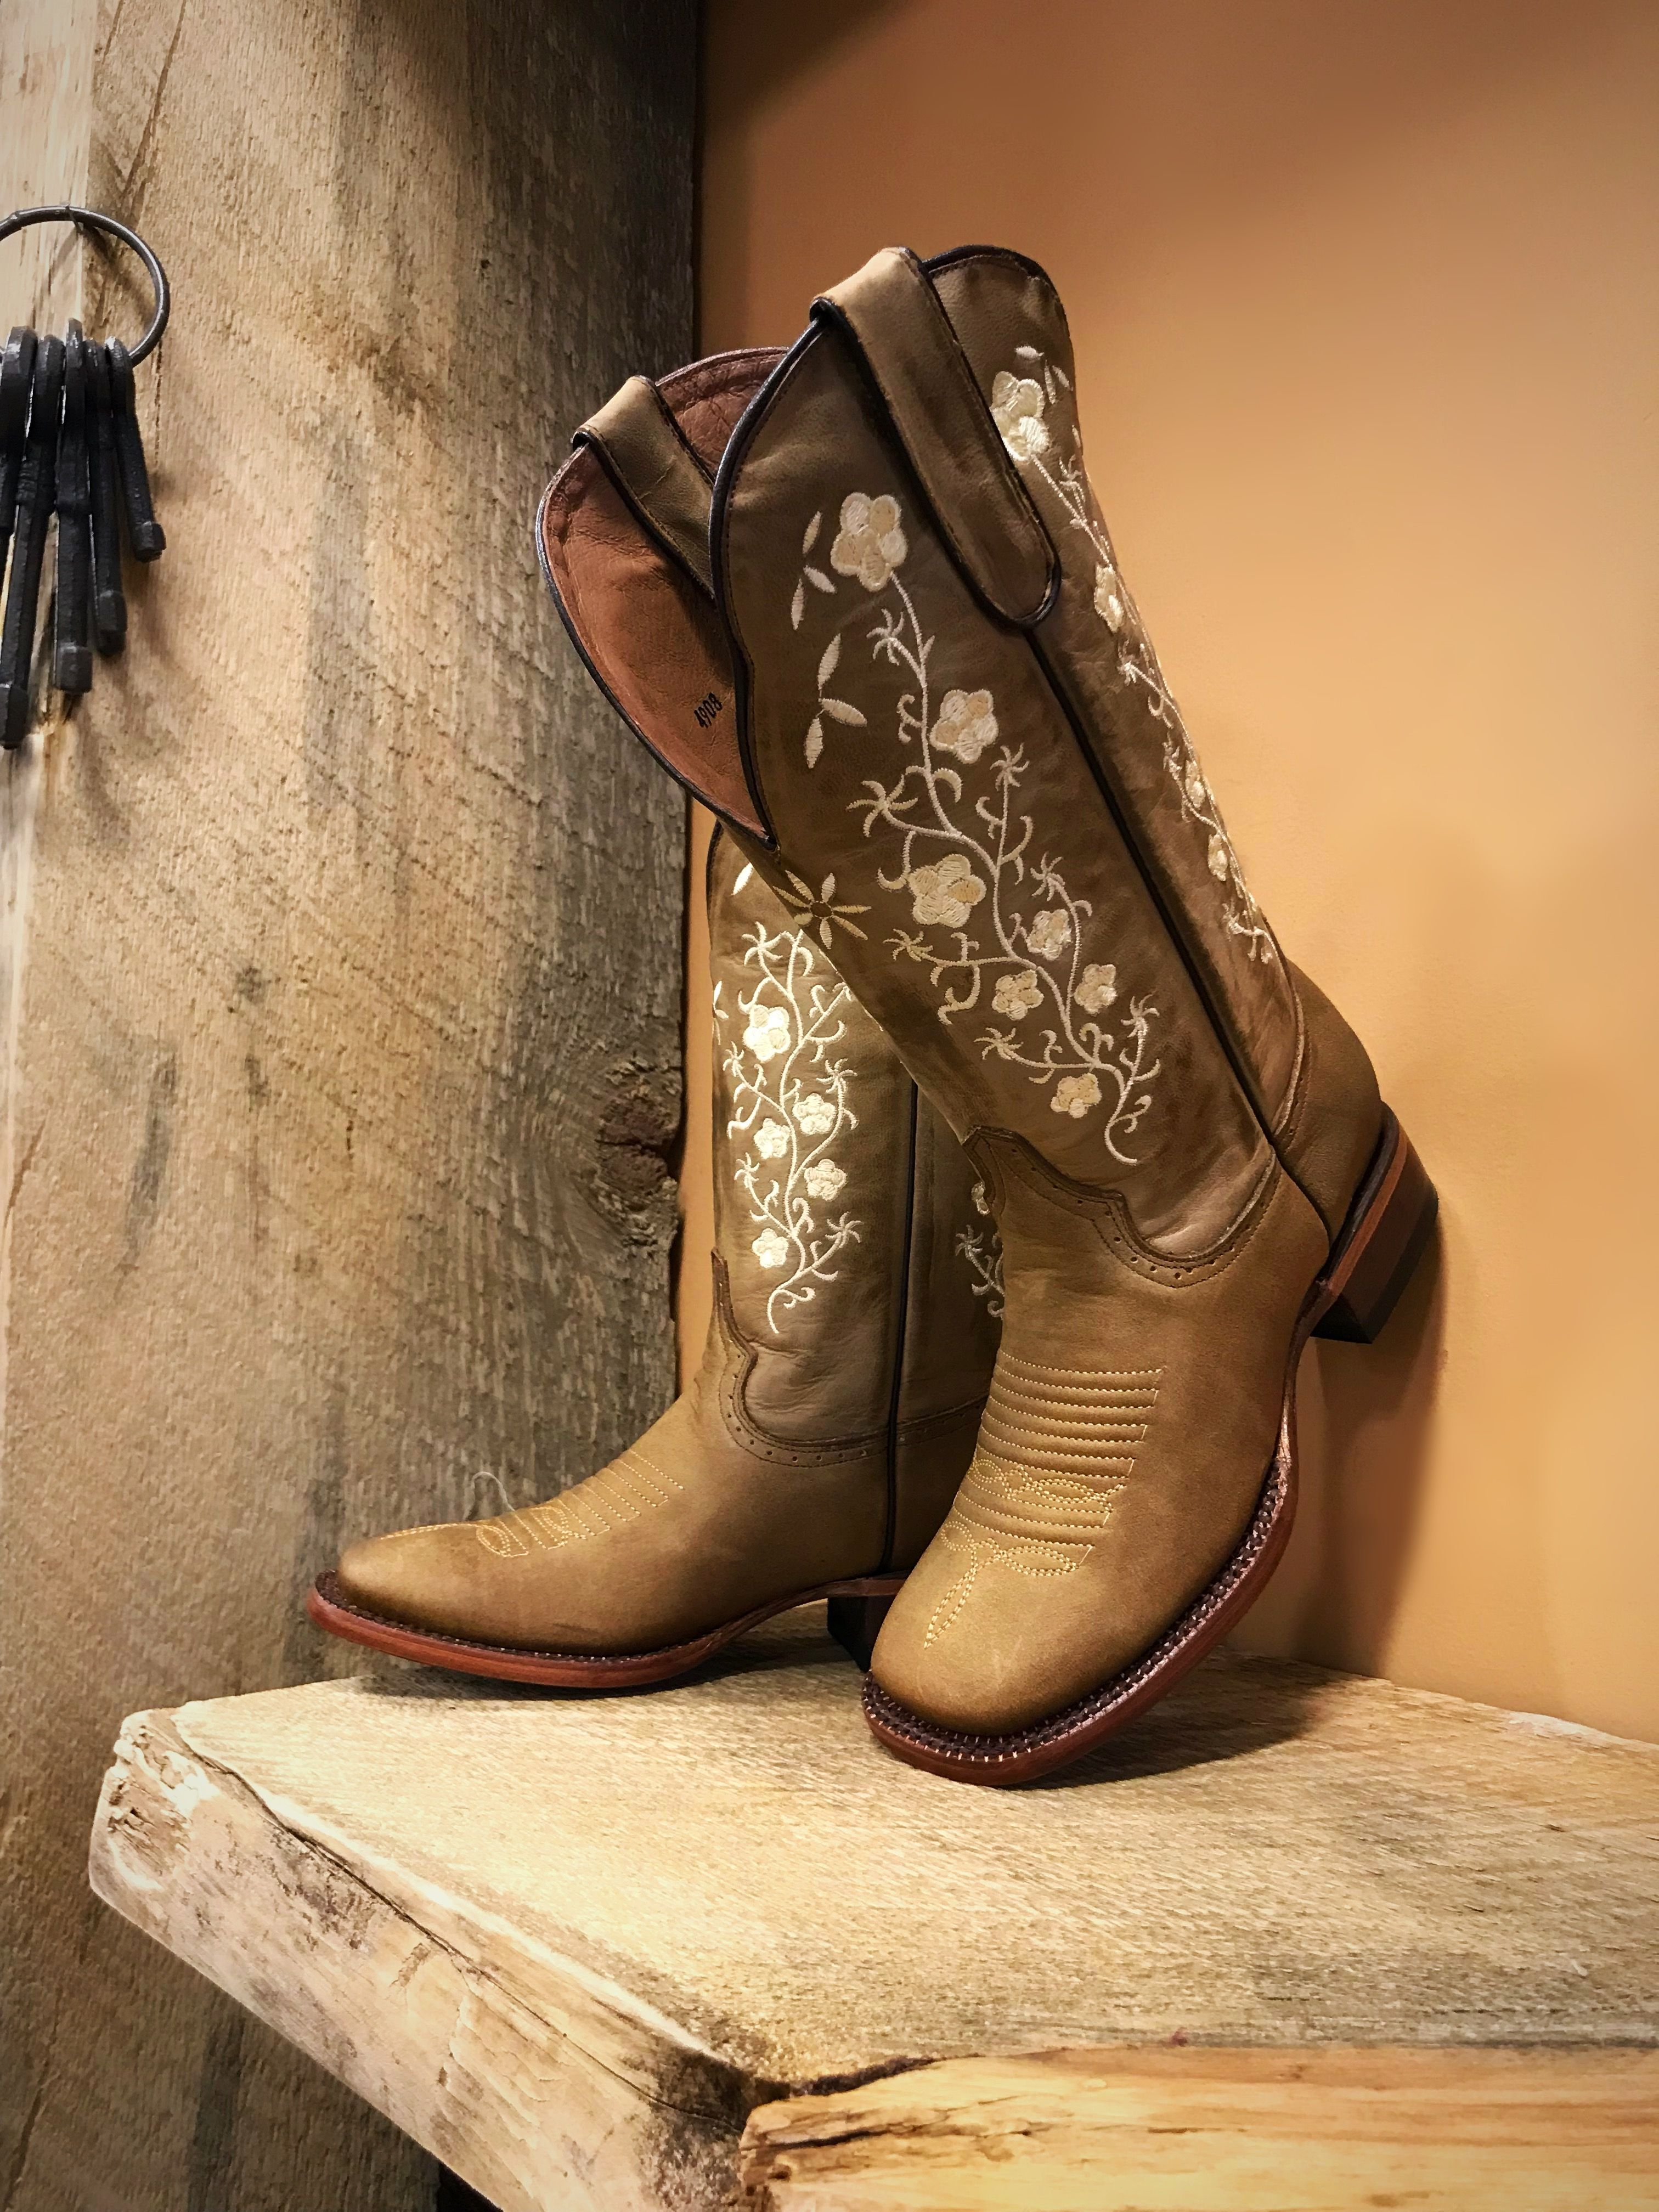 c5c872d4258 Women's Floral Embroidery Cowgirl Square Toe Boots ( Tan ) in 2019 ...